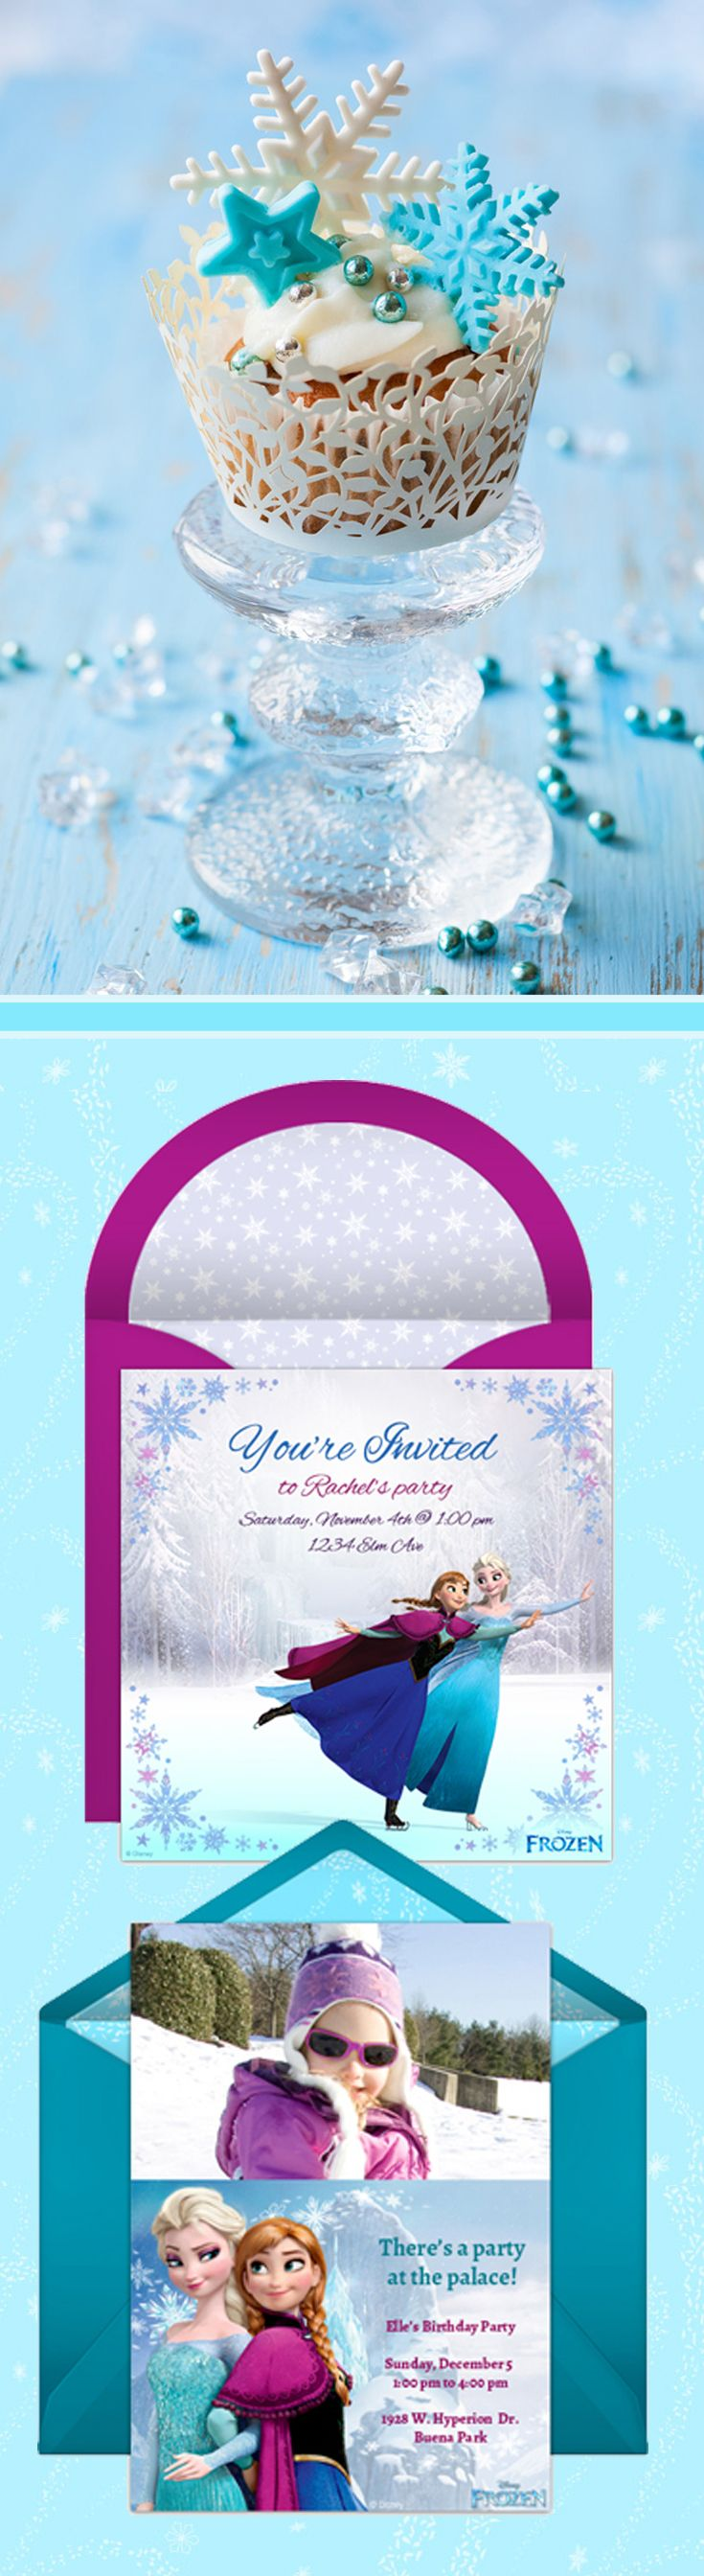 Paper invites are too formal, and emails are too casual. Get it just right with online invitations from Punchbowl. We've got everything you need for your Frozen themed party. http://www.punchbowl.com/disney/groups/frozen/?utm_source=Pinterest&utm_medium=15.2P